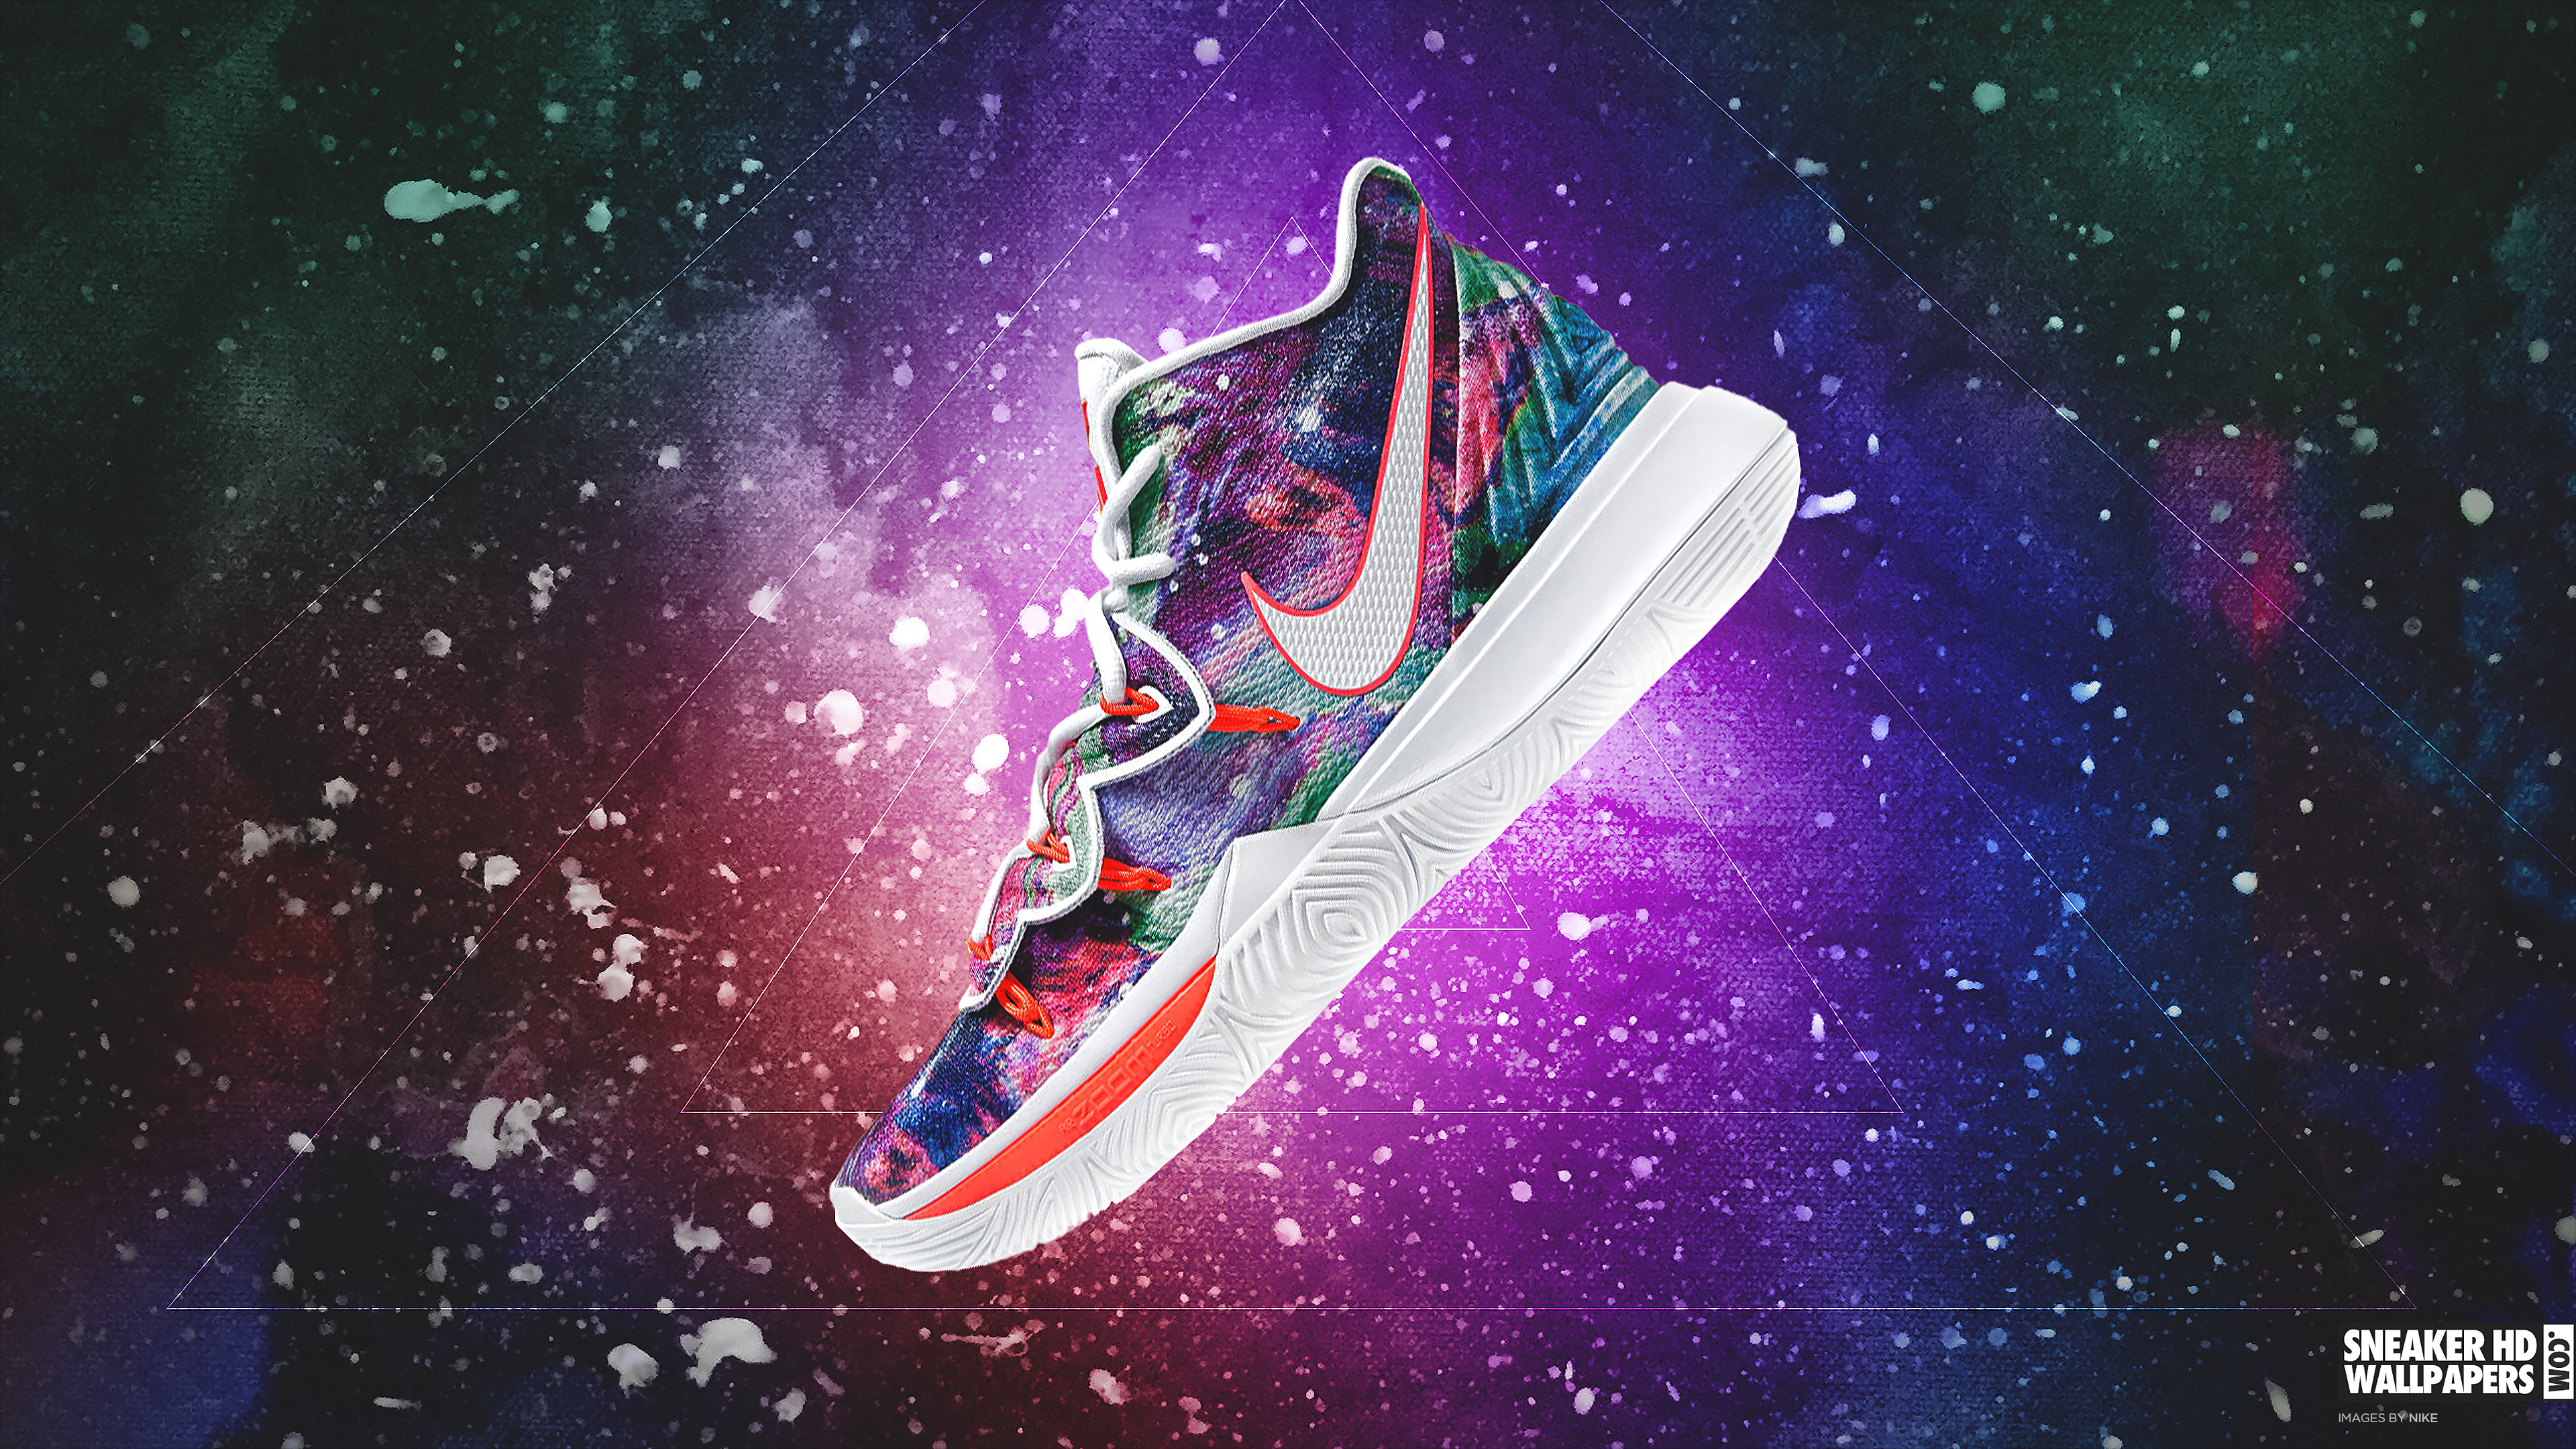 b8a049ccd5 SneakerHDWallpapers.com – Your favorite sneakers in HD and mobile ...